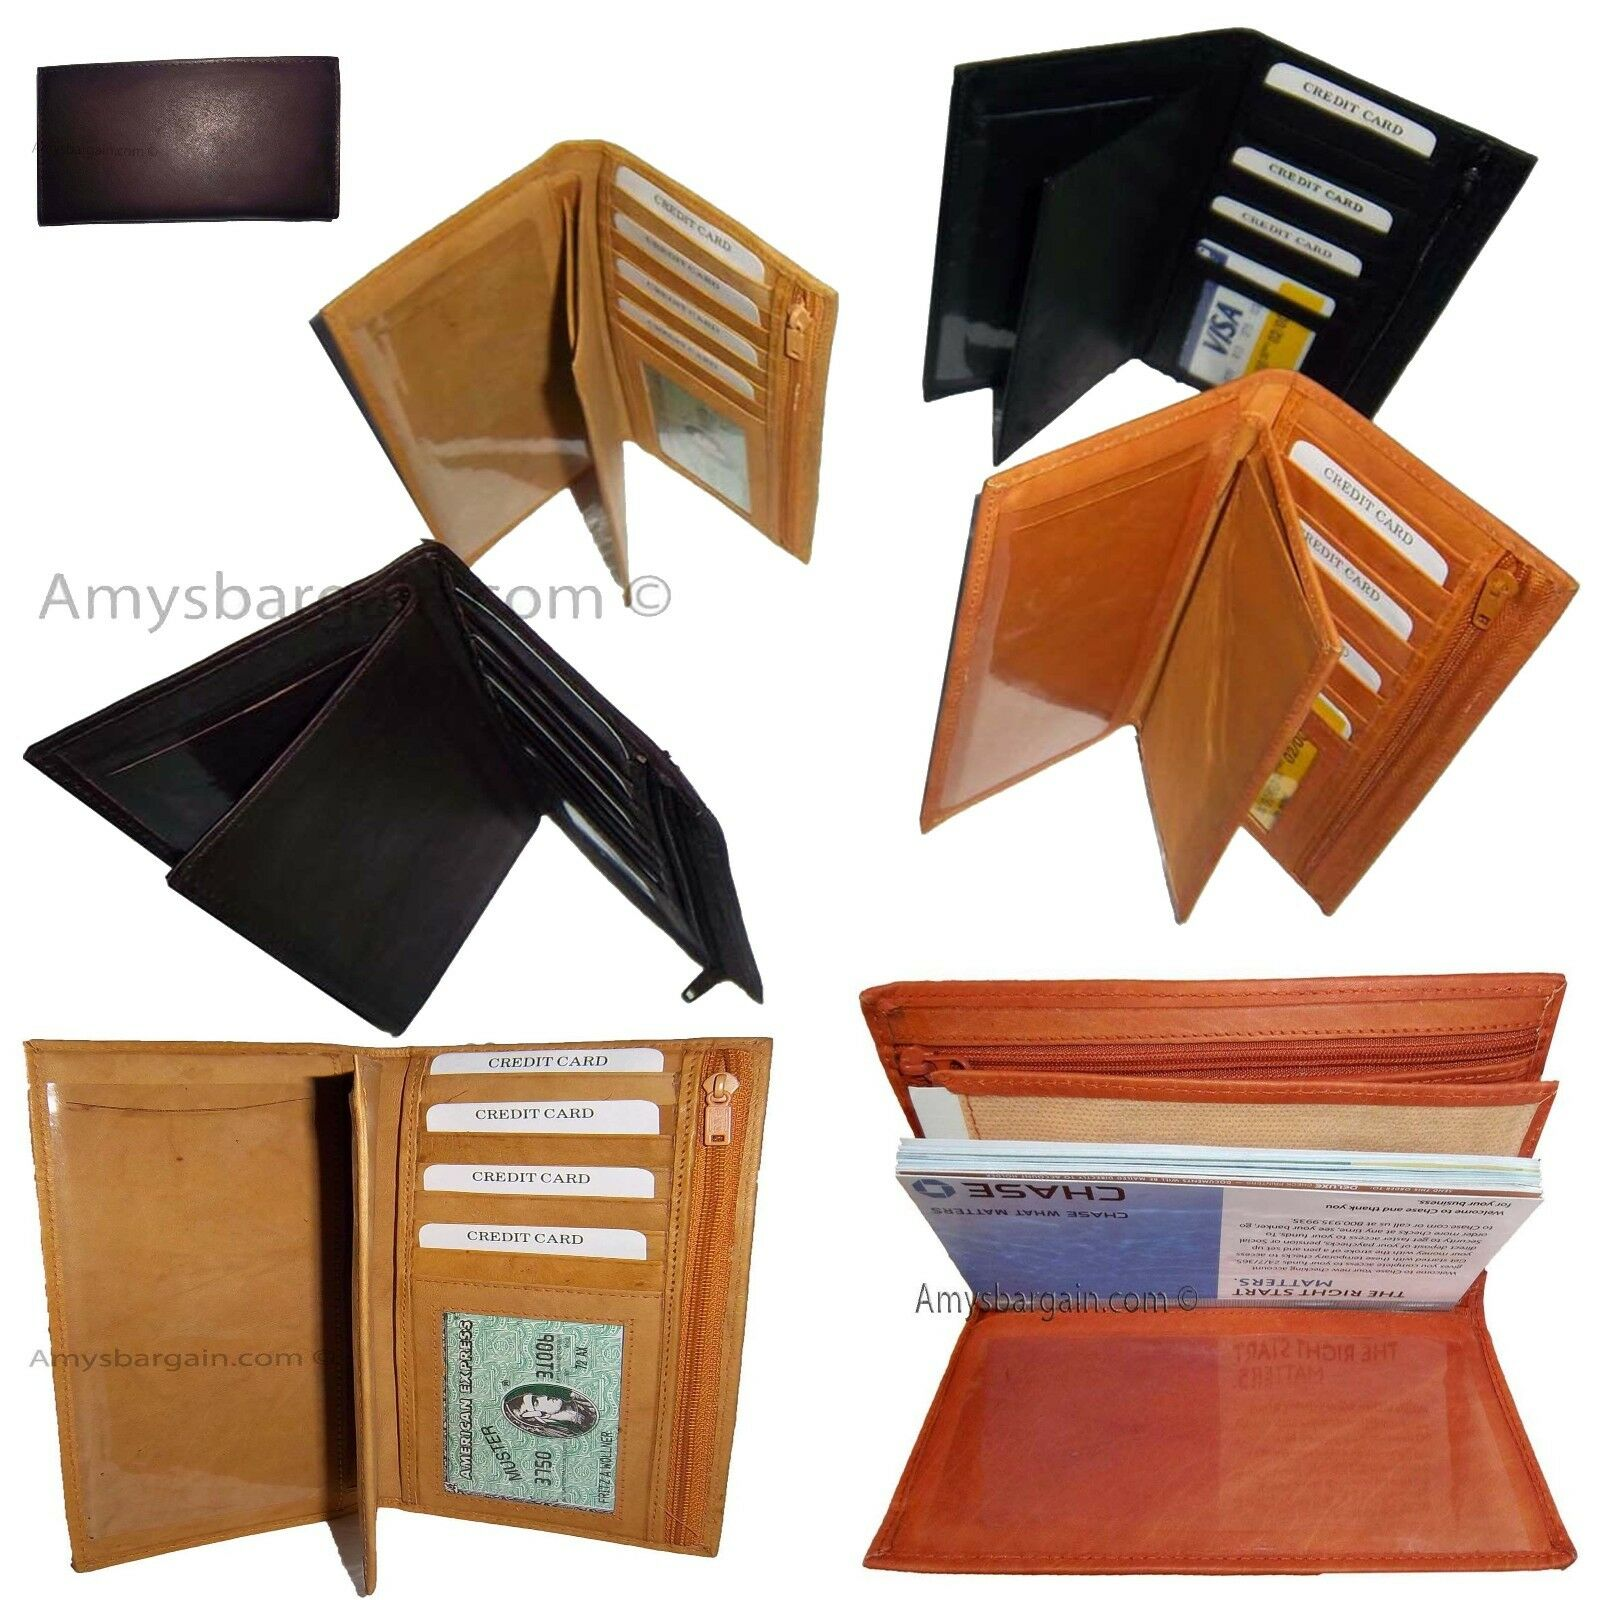 New women/men's Leather check book wallet checkbook vover credit cad carrier BN